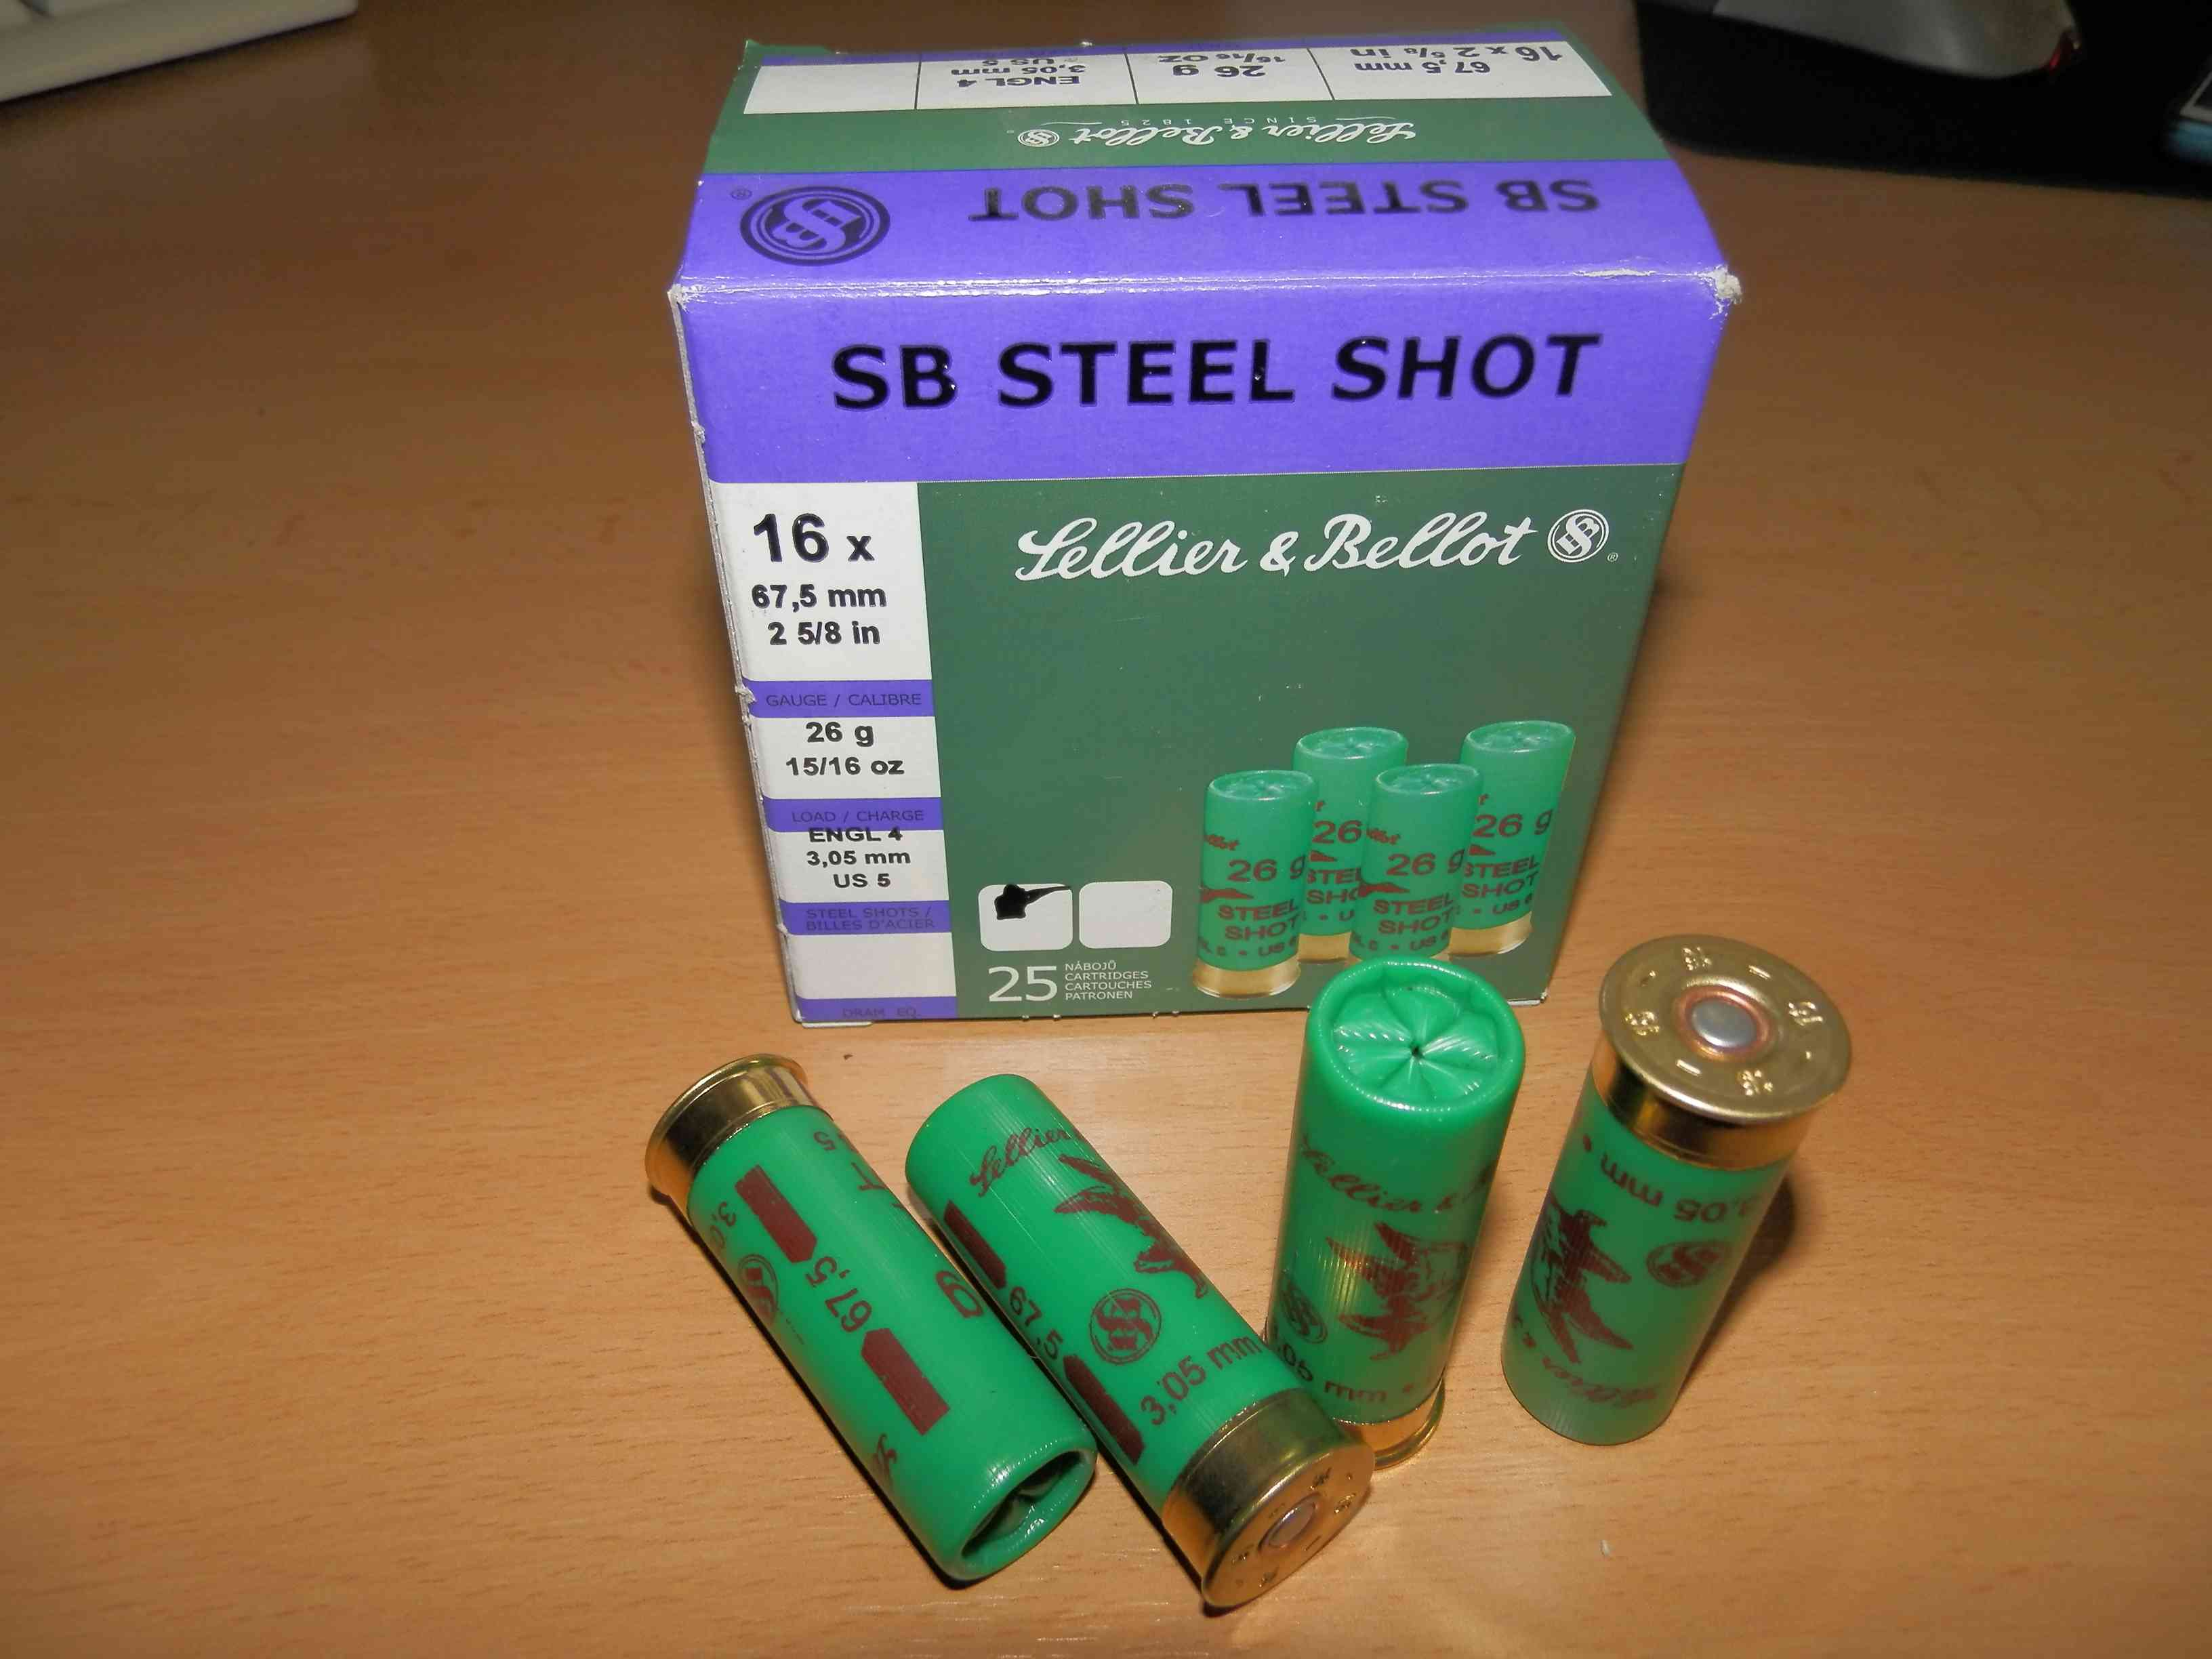 16/67,5 SB STEEL SHOT 3,05mm